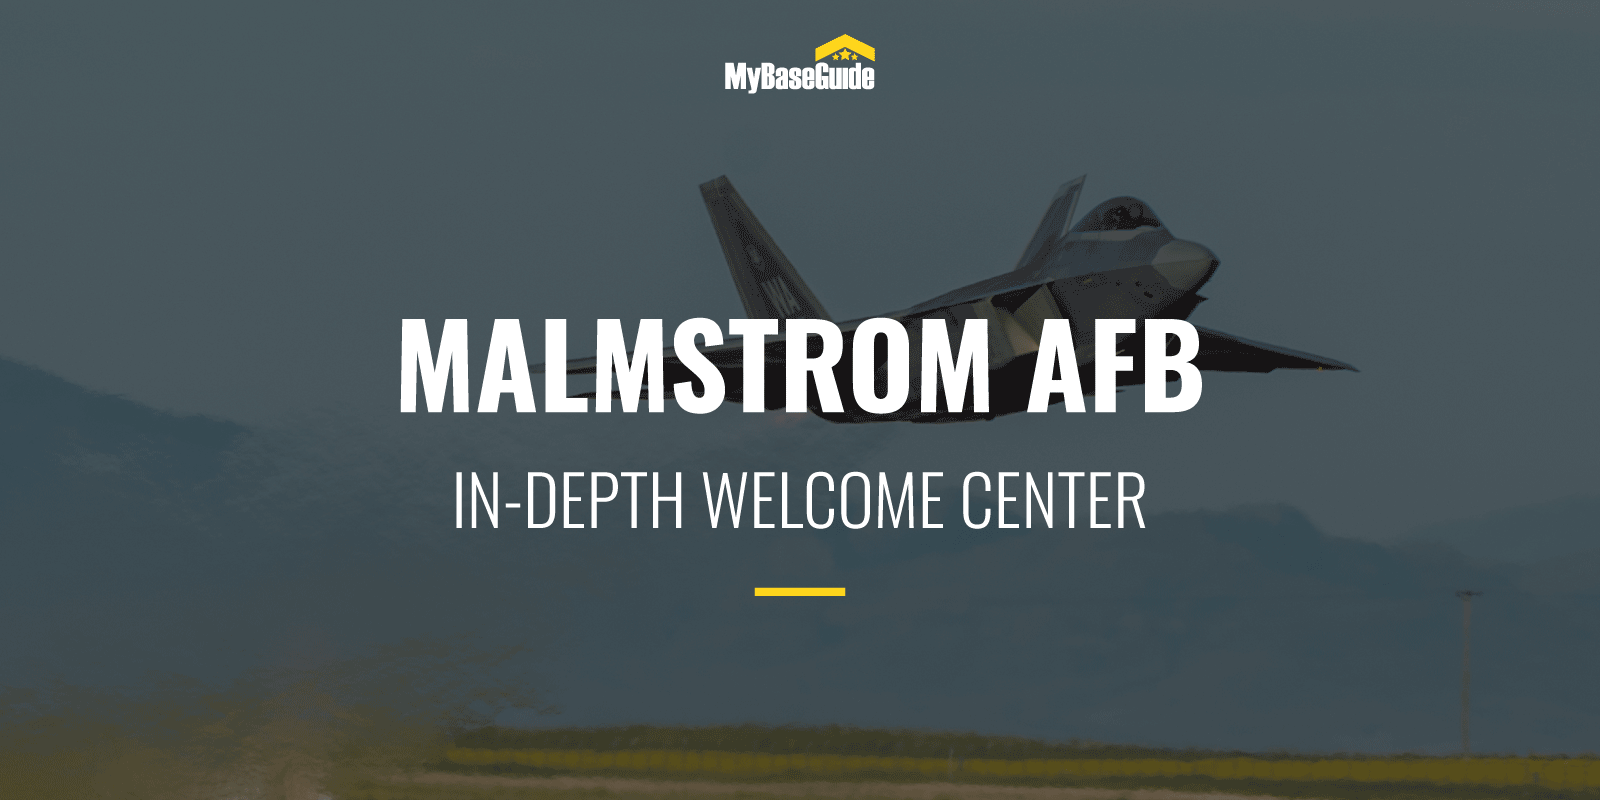 Malmstrom Air Force Base: In-Depth Welcome Center